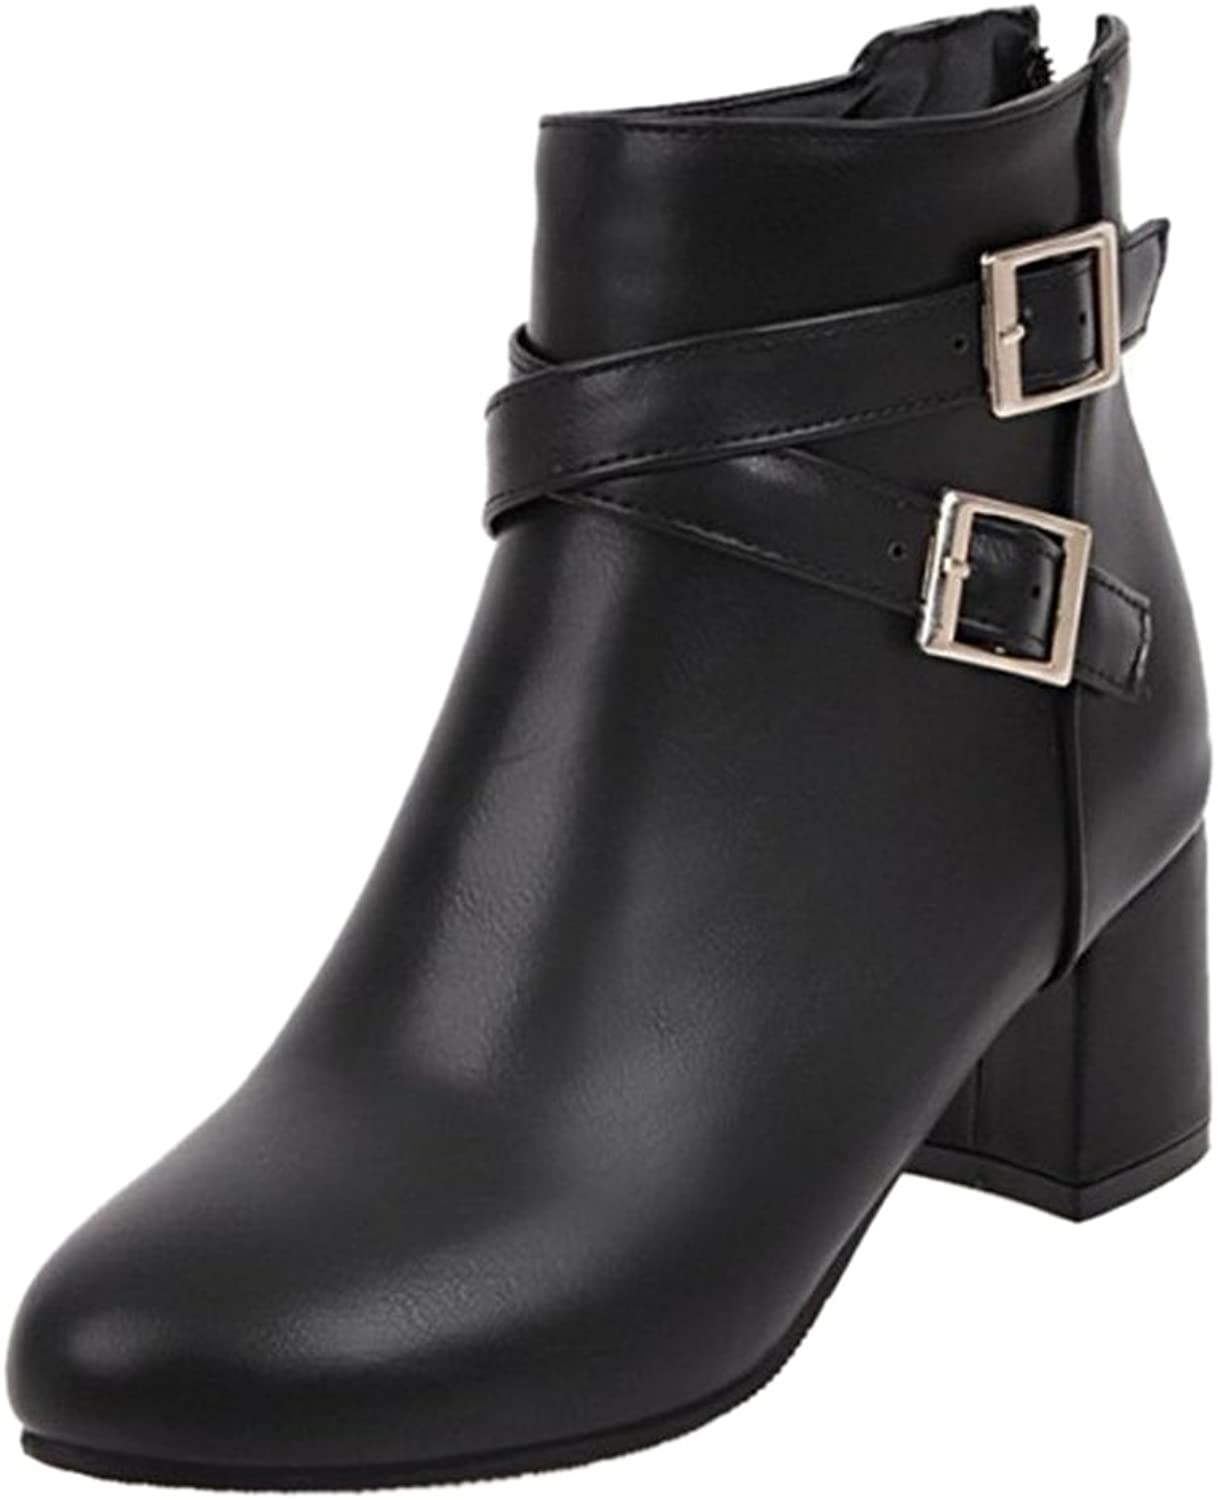 CUTEHEELS Women Casual Ankle Boots with Mid Chunky Heel and Large Size Avaialble